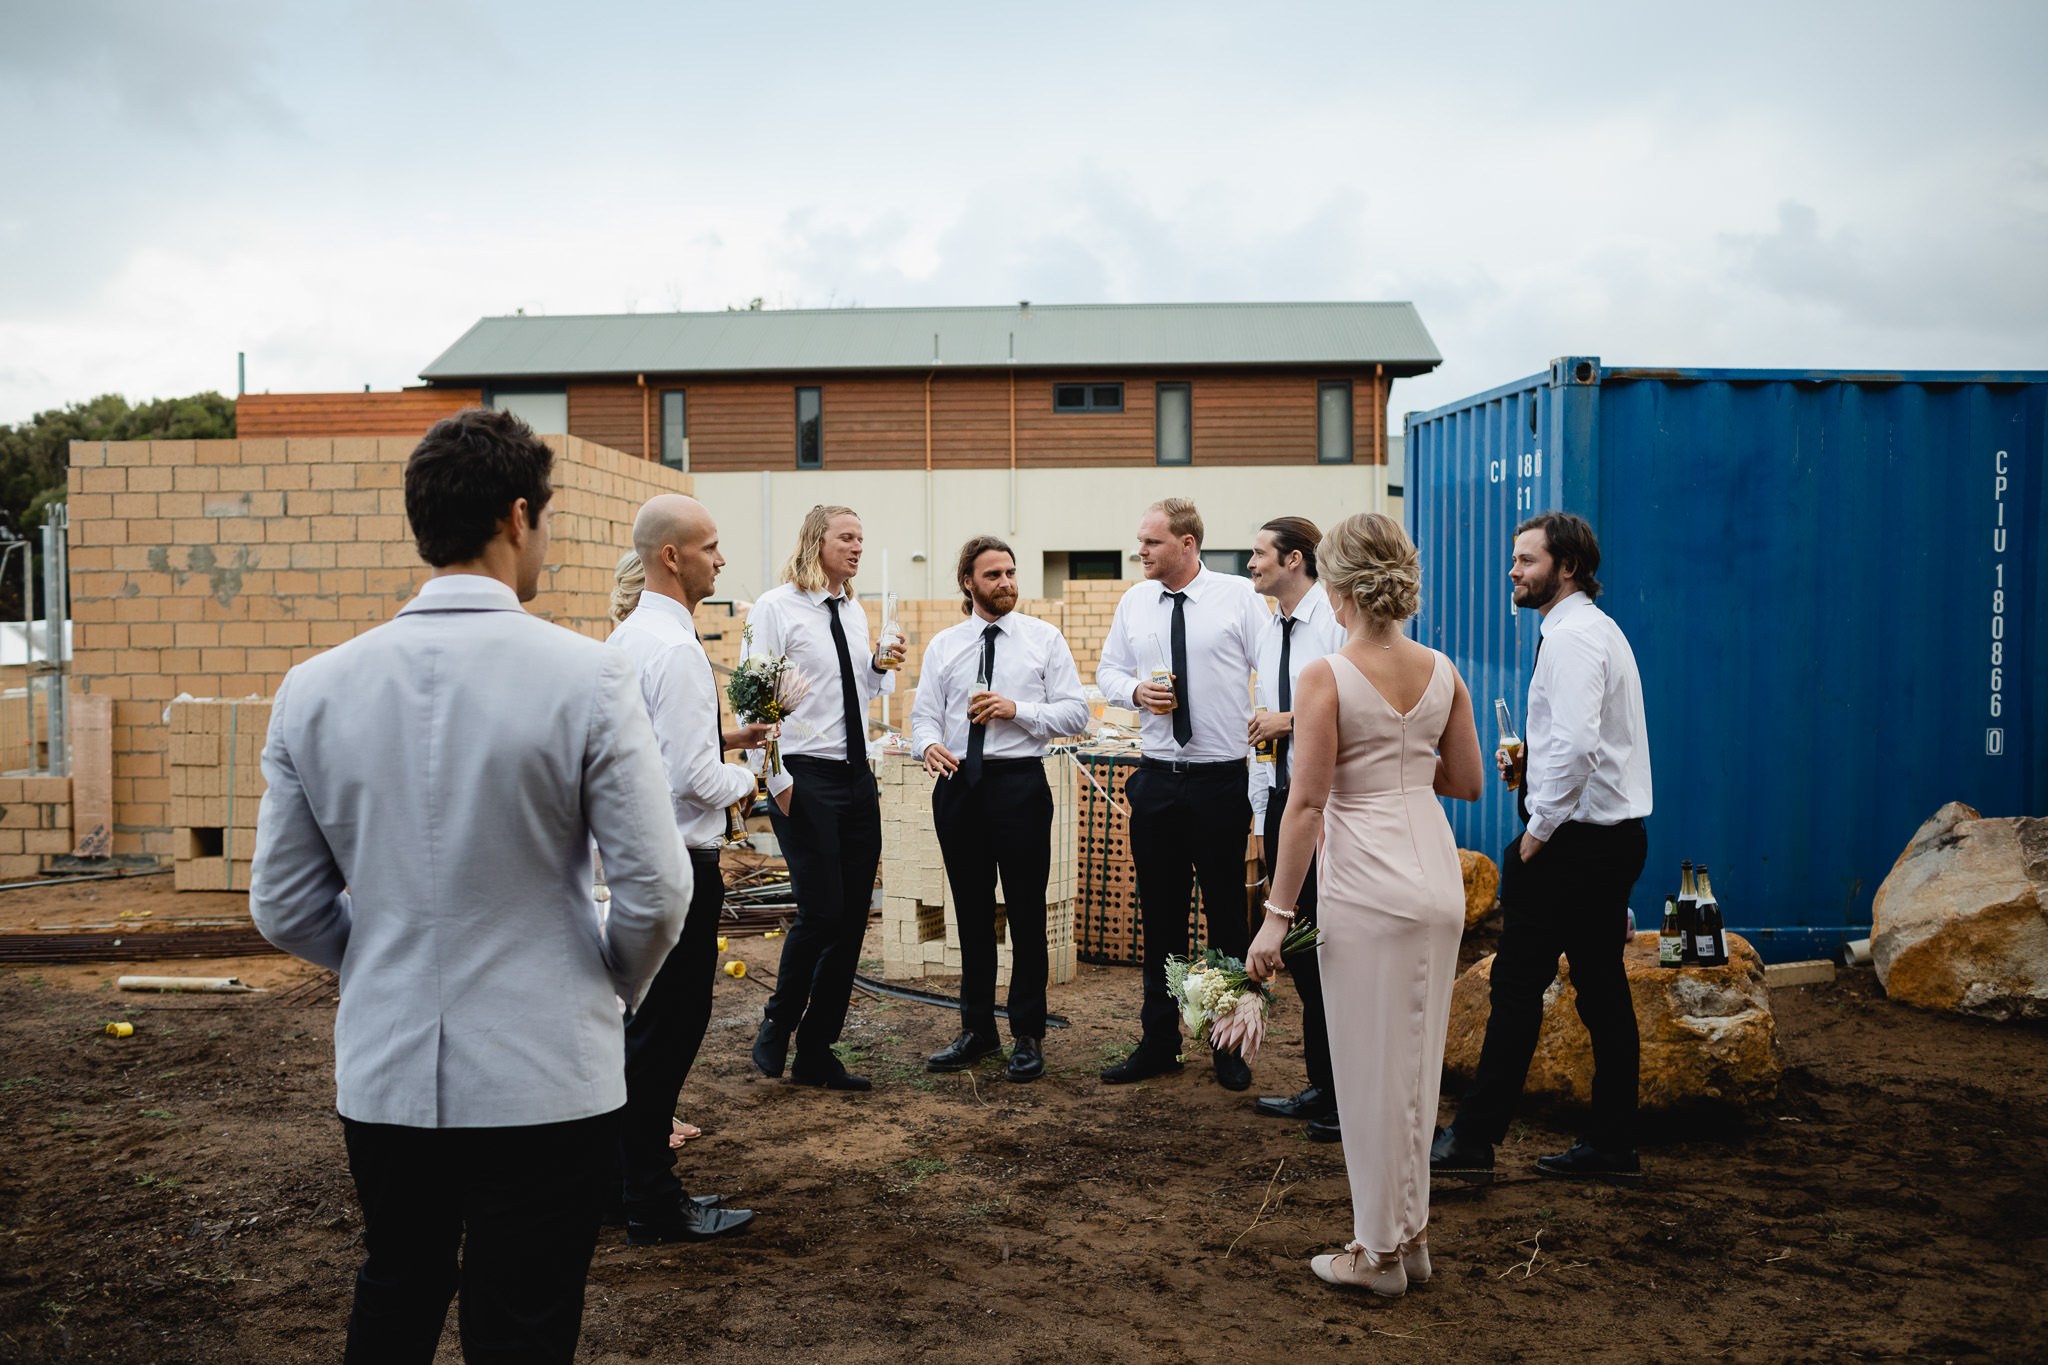 groomsmen and bridesmaids hanging out at building site with blue sea container